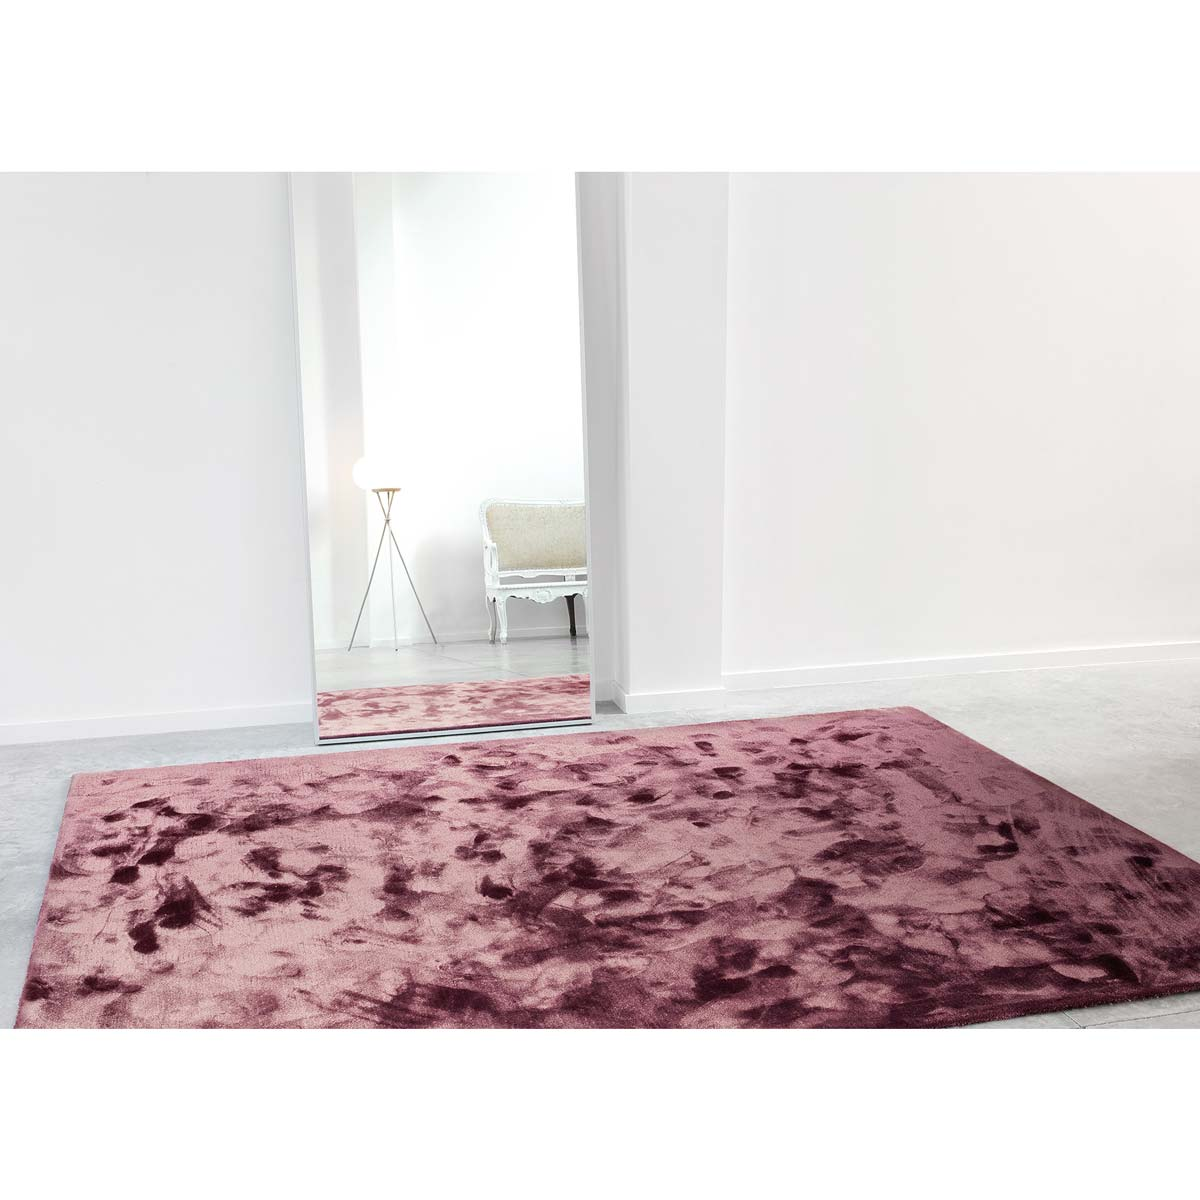 Astral Rug Ruby Wine - Edizione limitata